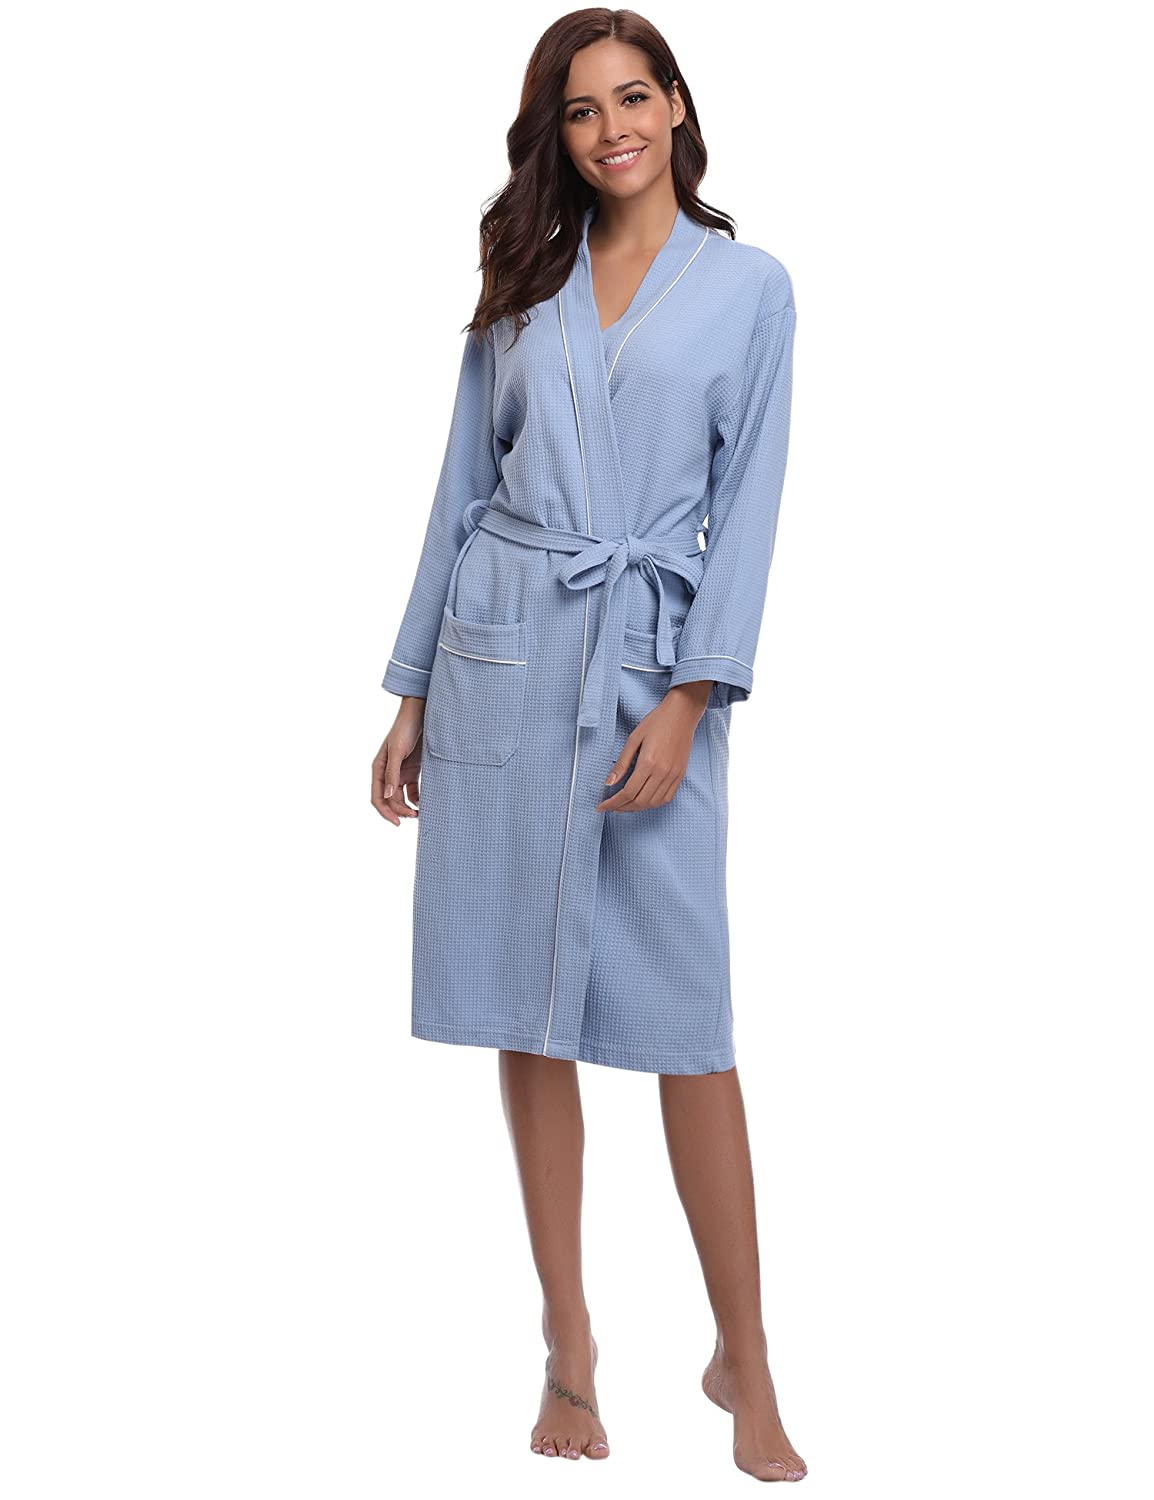 Aibrou Bathrobes for Women Waffle Weave Spa Robe Womens Kimono Lightweight  Cotton Robe at Amazon Women s Clothing store  ba6f12058